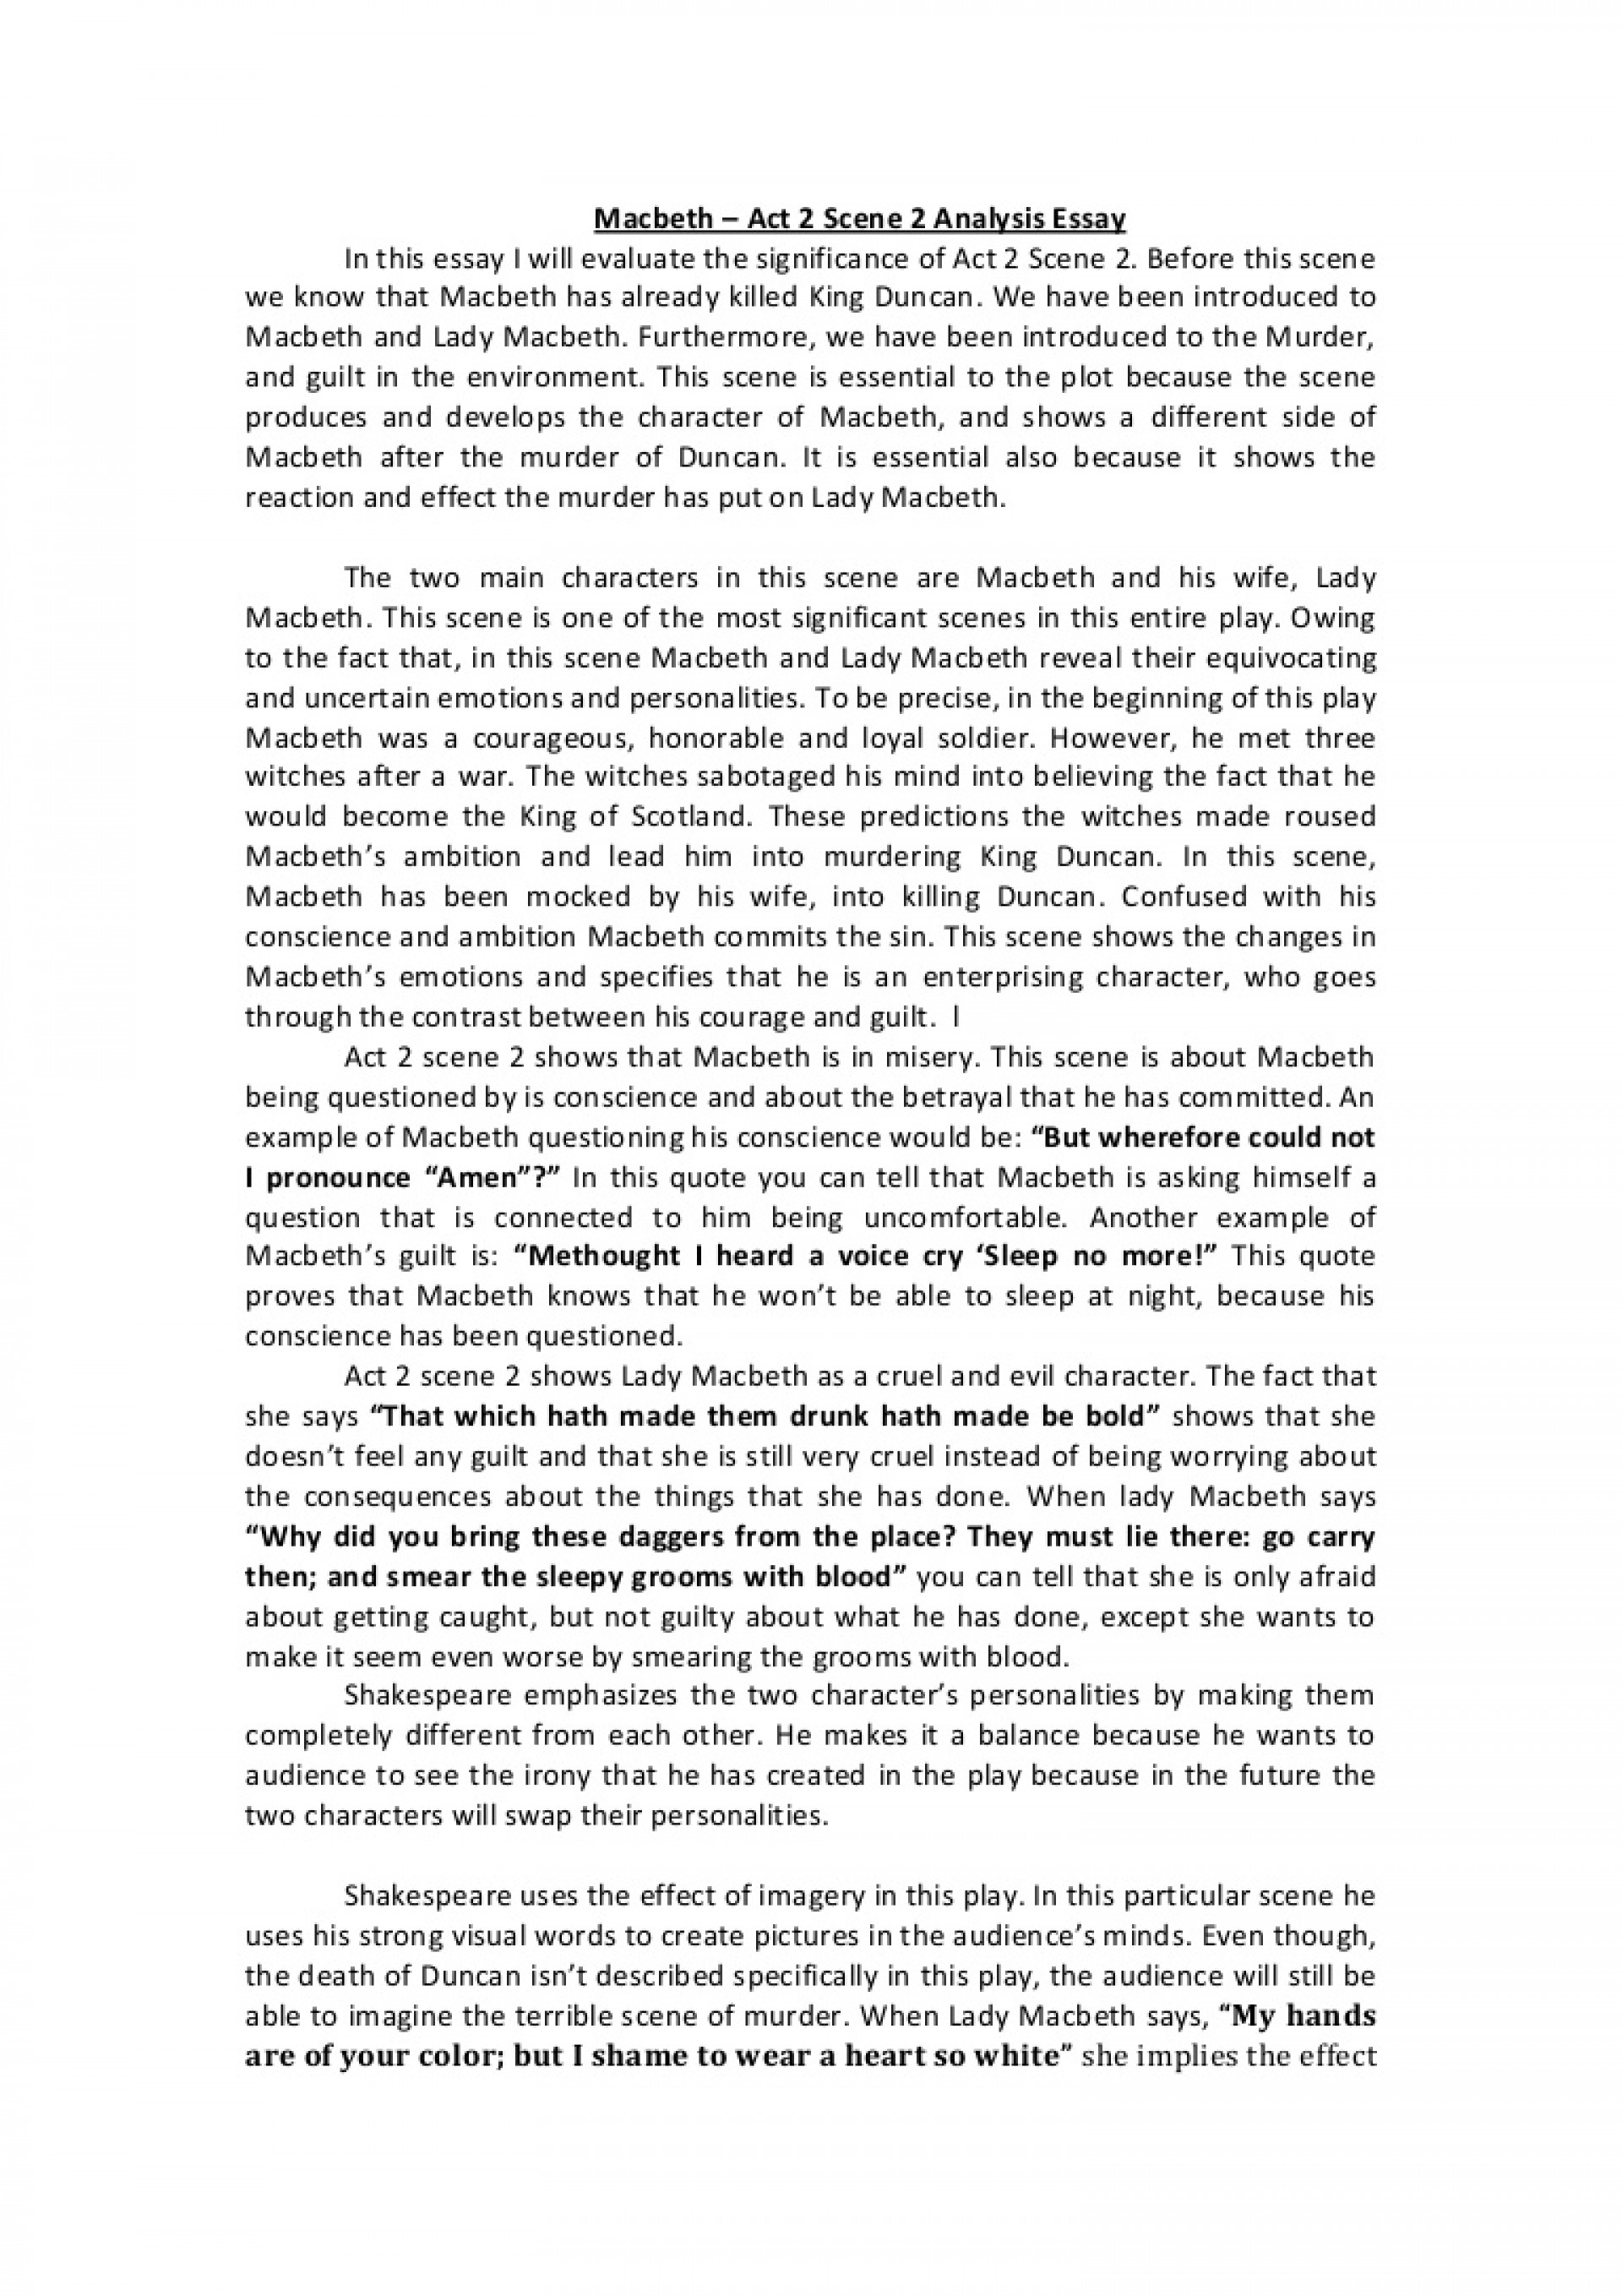 012 Conclusion For Macbeth Essay Ambition Example Act2scene2analysisessay Phpapp02 Thumbnail Best 1920